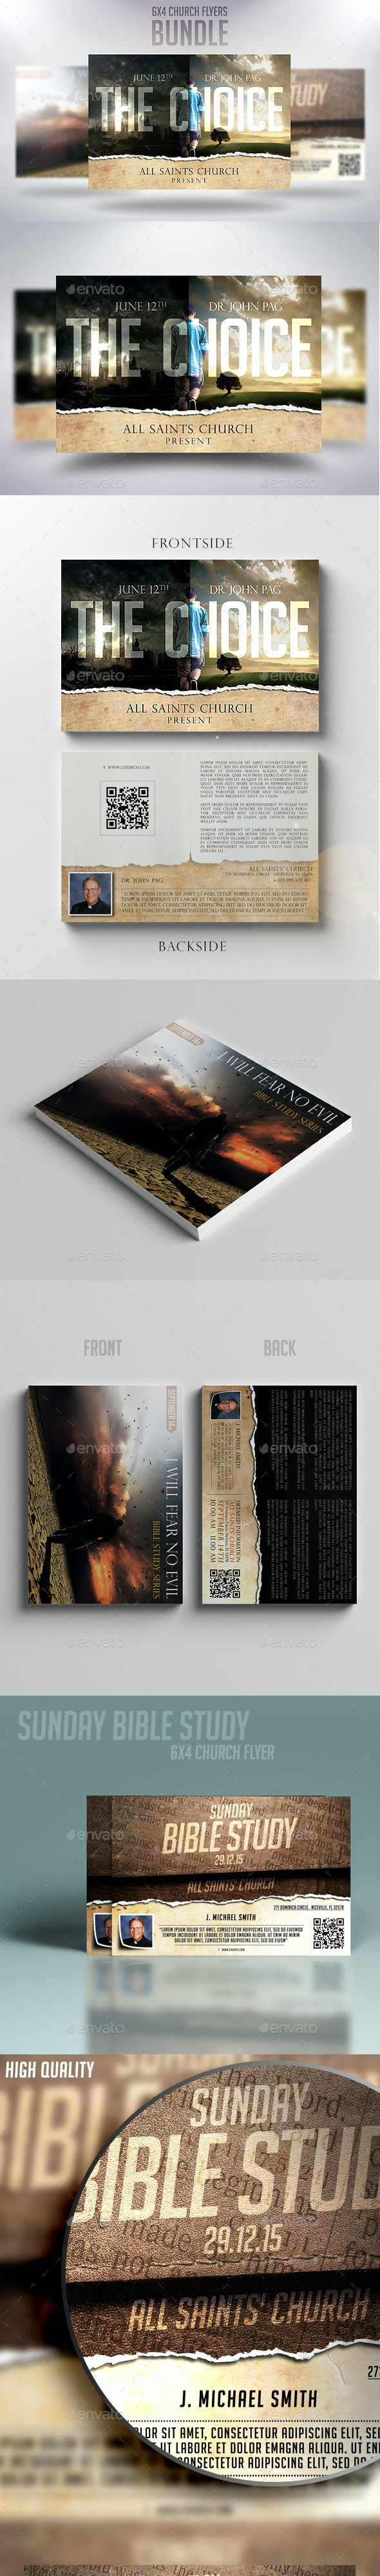 6x4 Church Flyers Bundle Vol.3 - Church Flyers